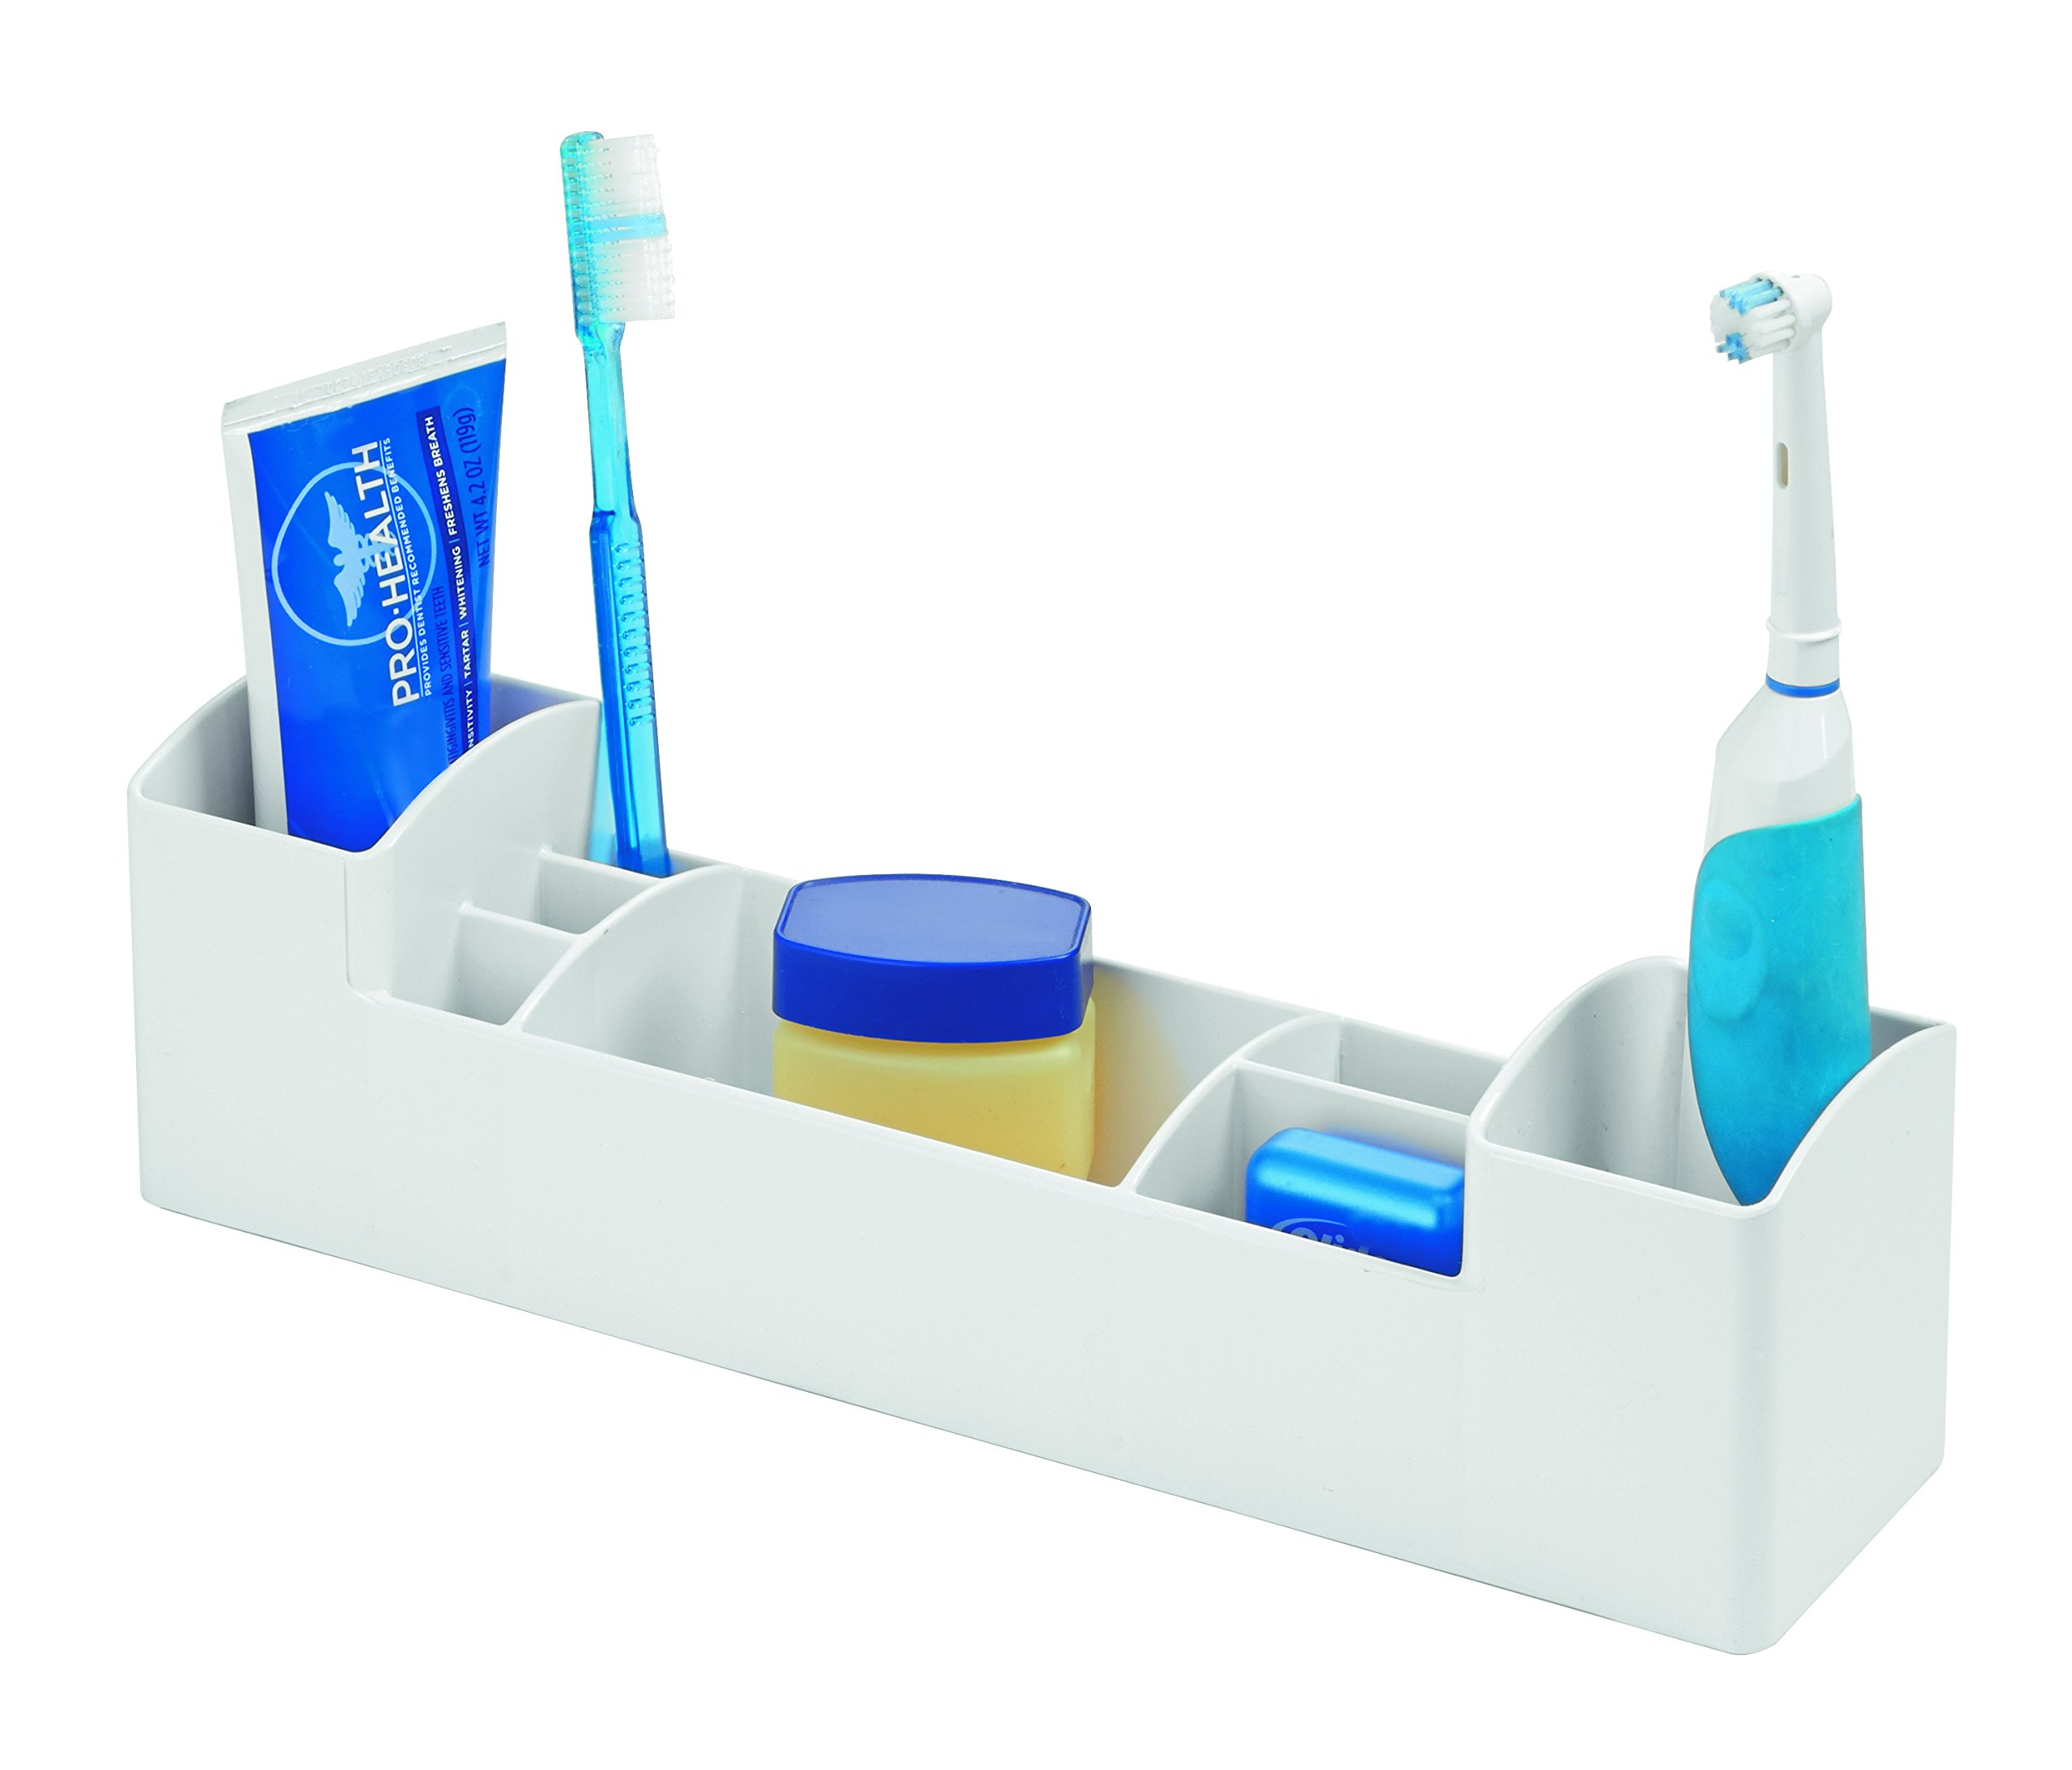 InterDesign Med+ Bathroom Medicine Cabinet Organizer, for Electric  Toothbrush, Toothpaste, Vitamins, Thermometer